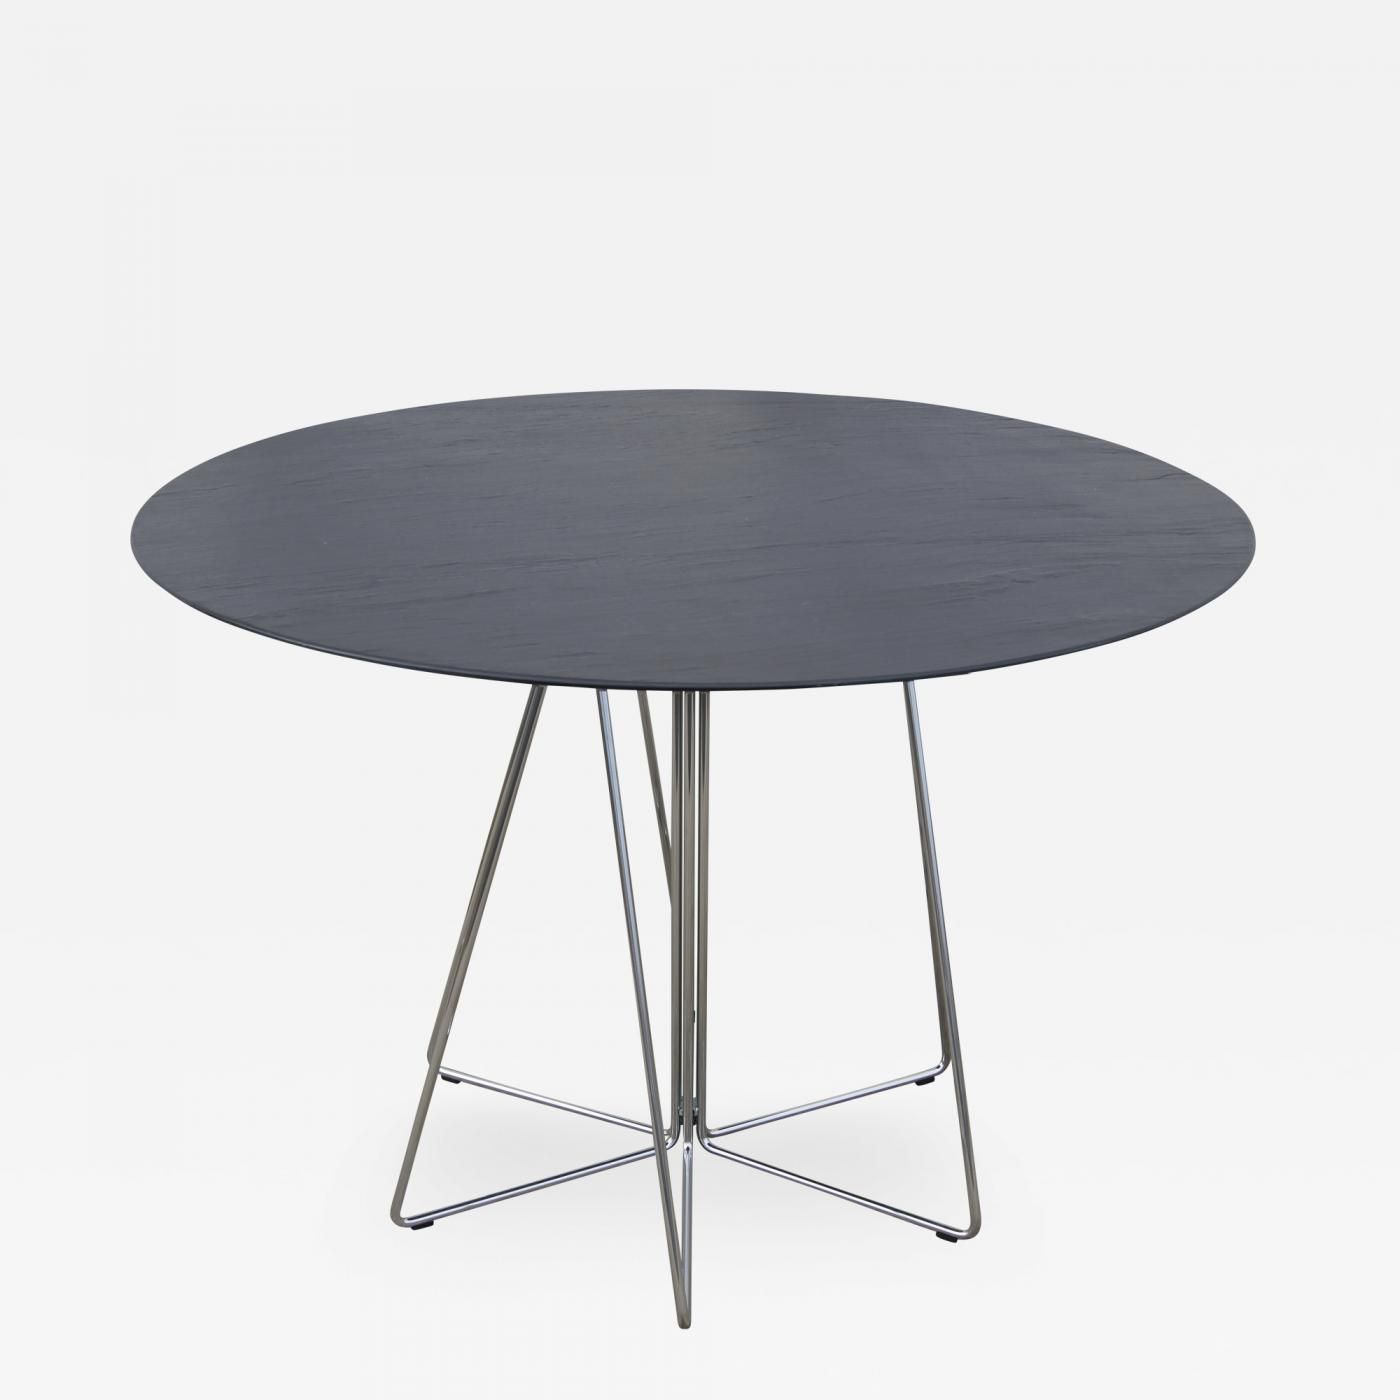 Knoll Table Massimo Vignelli Paperclip Table By Lella And Massimo Vignelli For Knoll